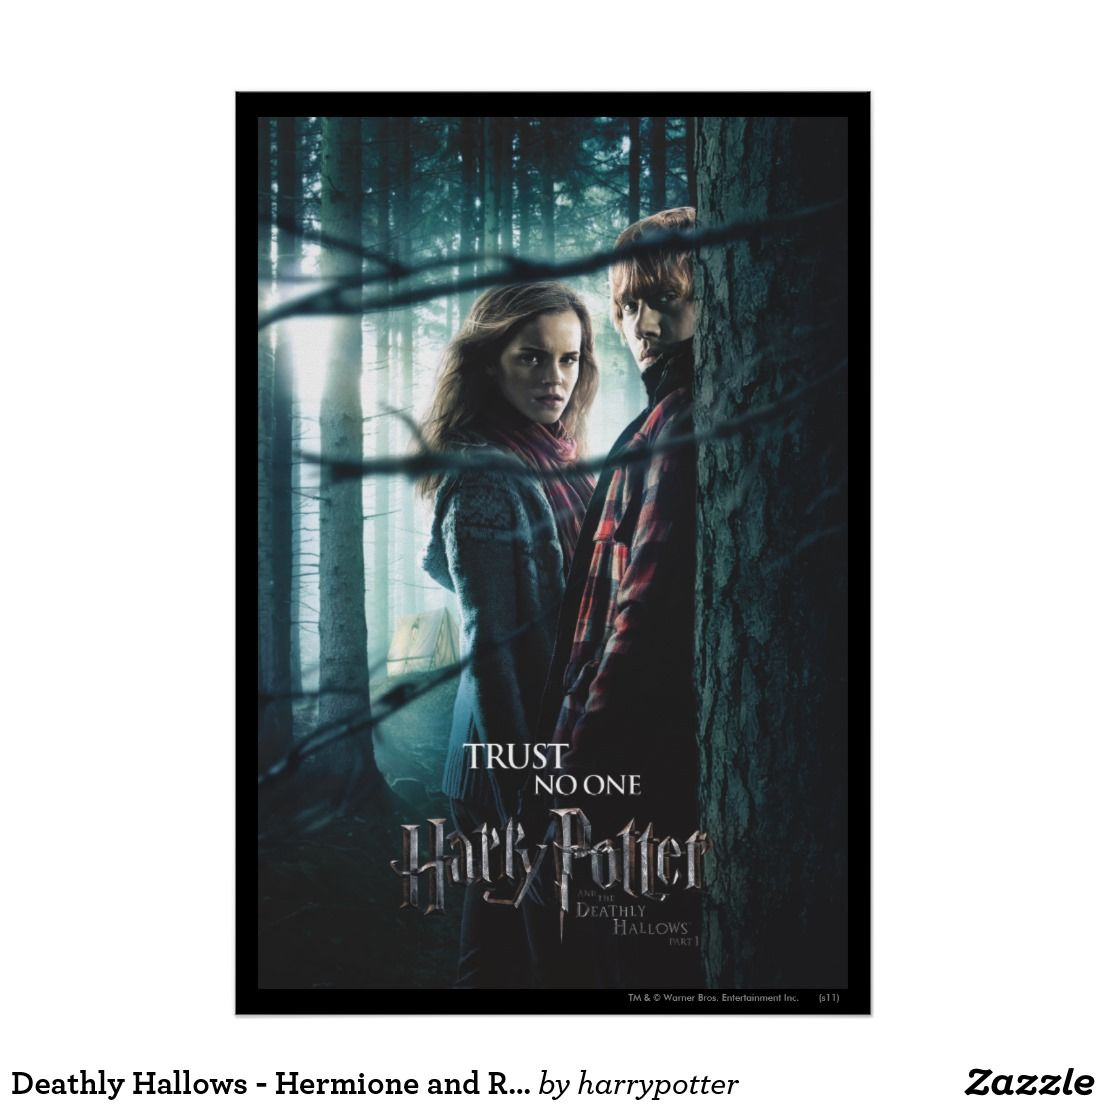 Deathly Hallows Hermione And Ron Poster Zazzle Com Harry Potter Movie Posters Deathly Hallows Harry Potter Invitations